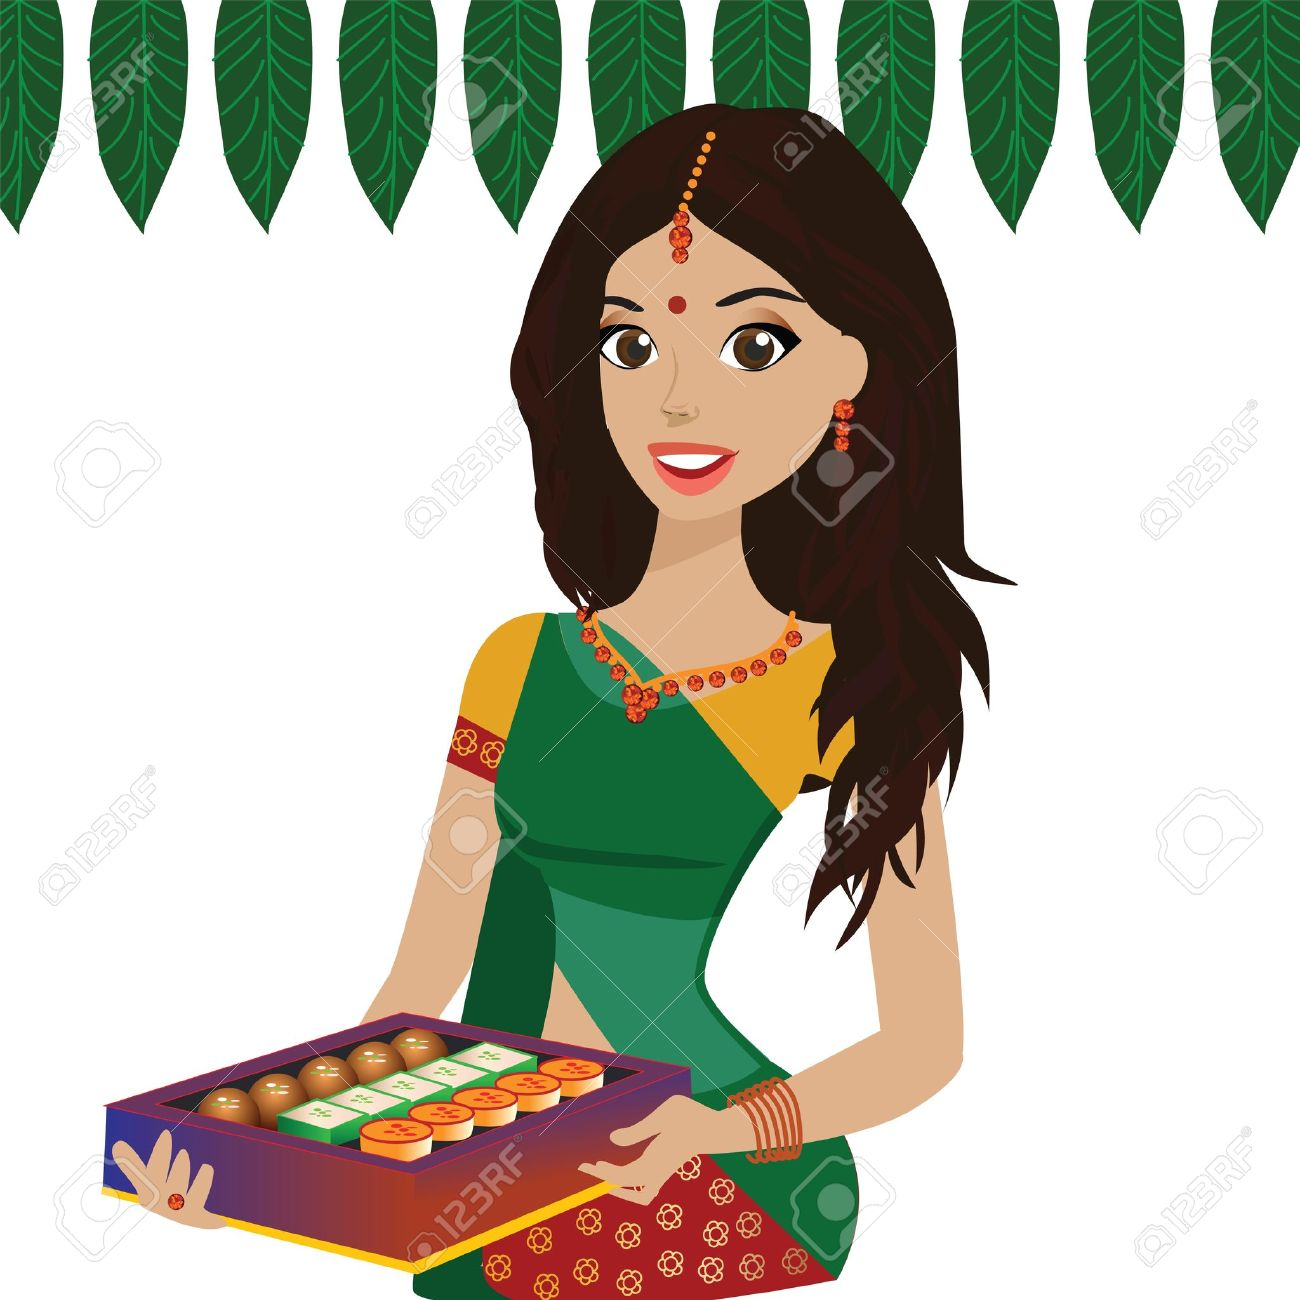 Woman from india clipart image freeuse Little indian girl clipart form india - ClipartFest image freeuse